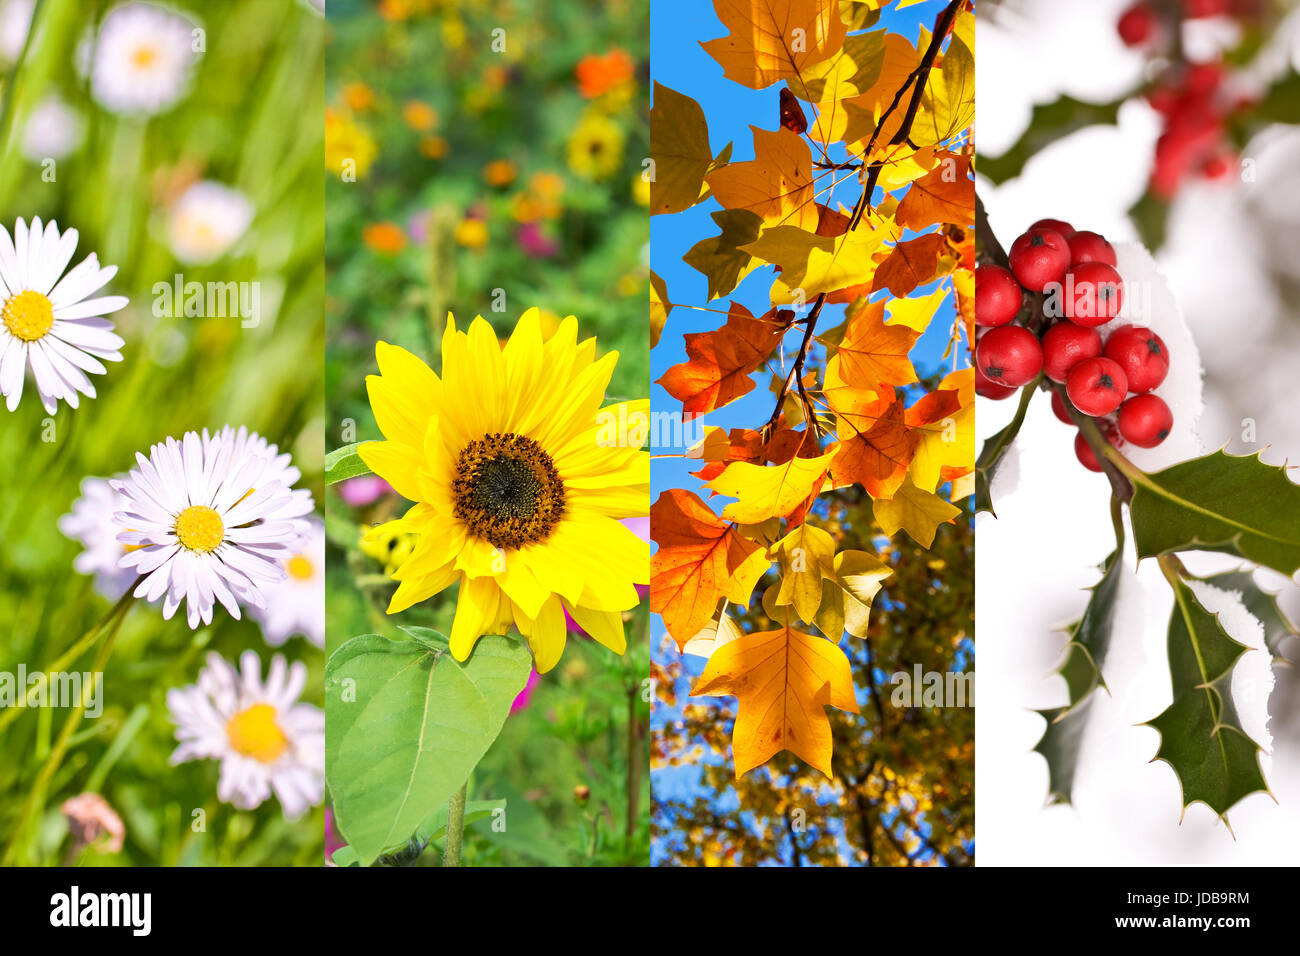 Plants and flowers in spring, summer, autumn, winter, photo collage, four seasons concept - Stock Image